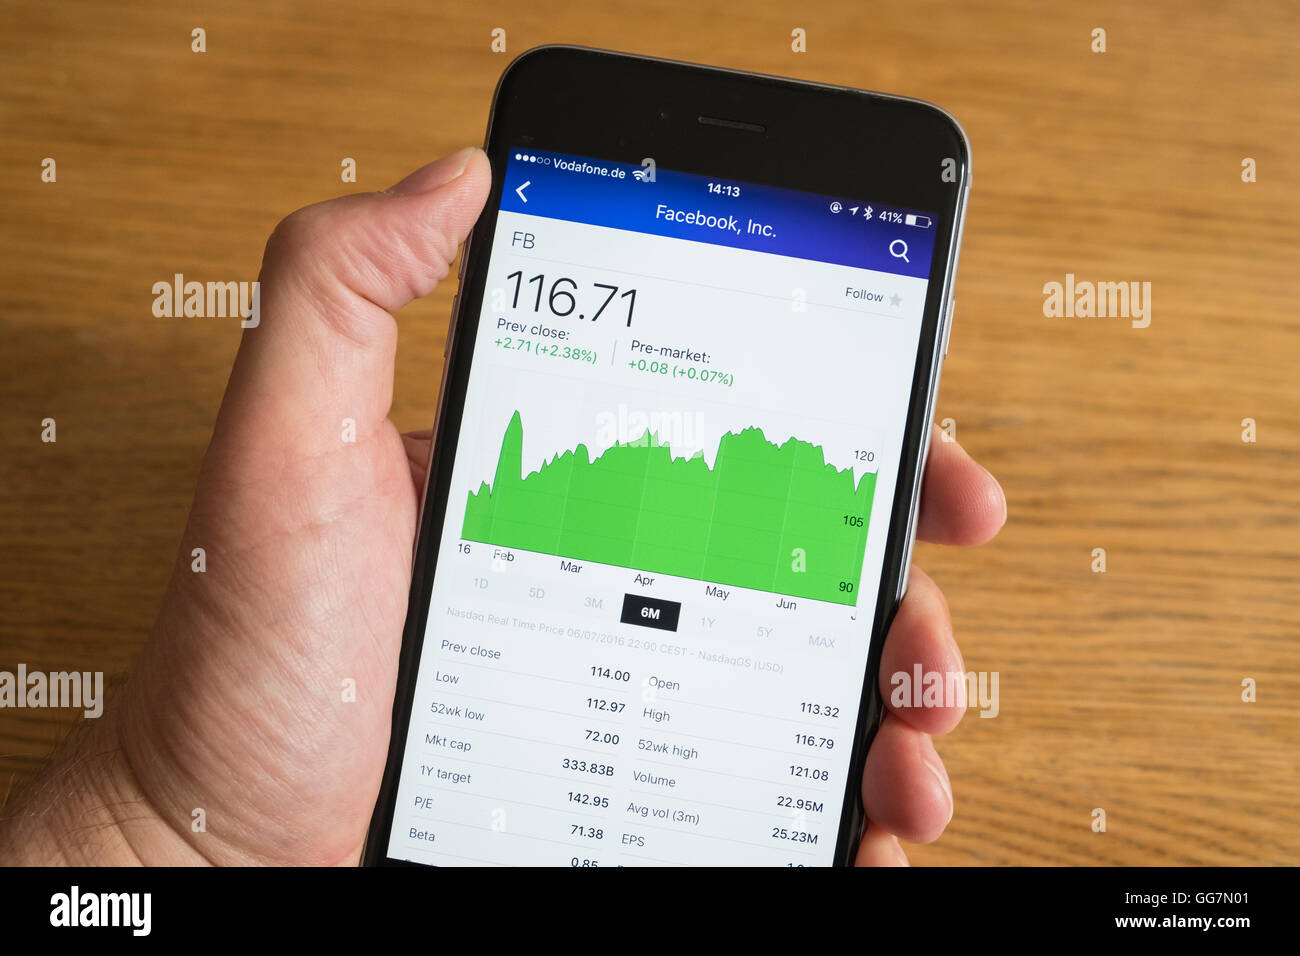 Detail of stock market performance of Facebook company on a smart phone - Stock Image